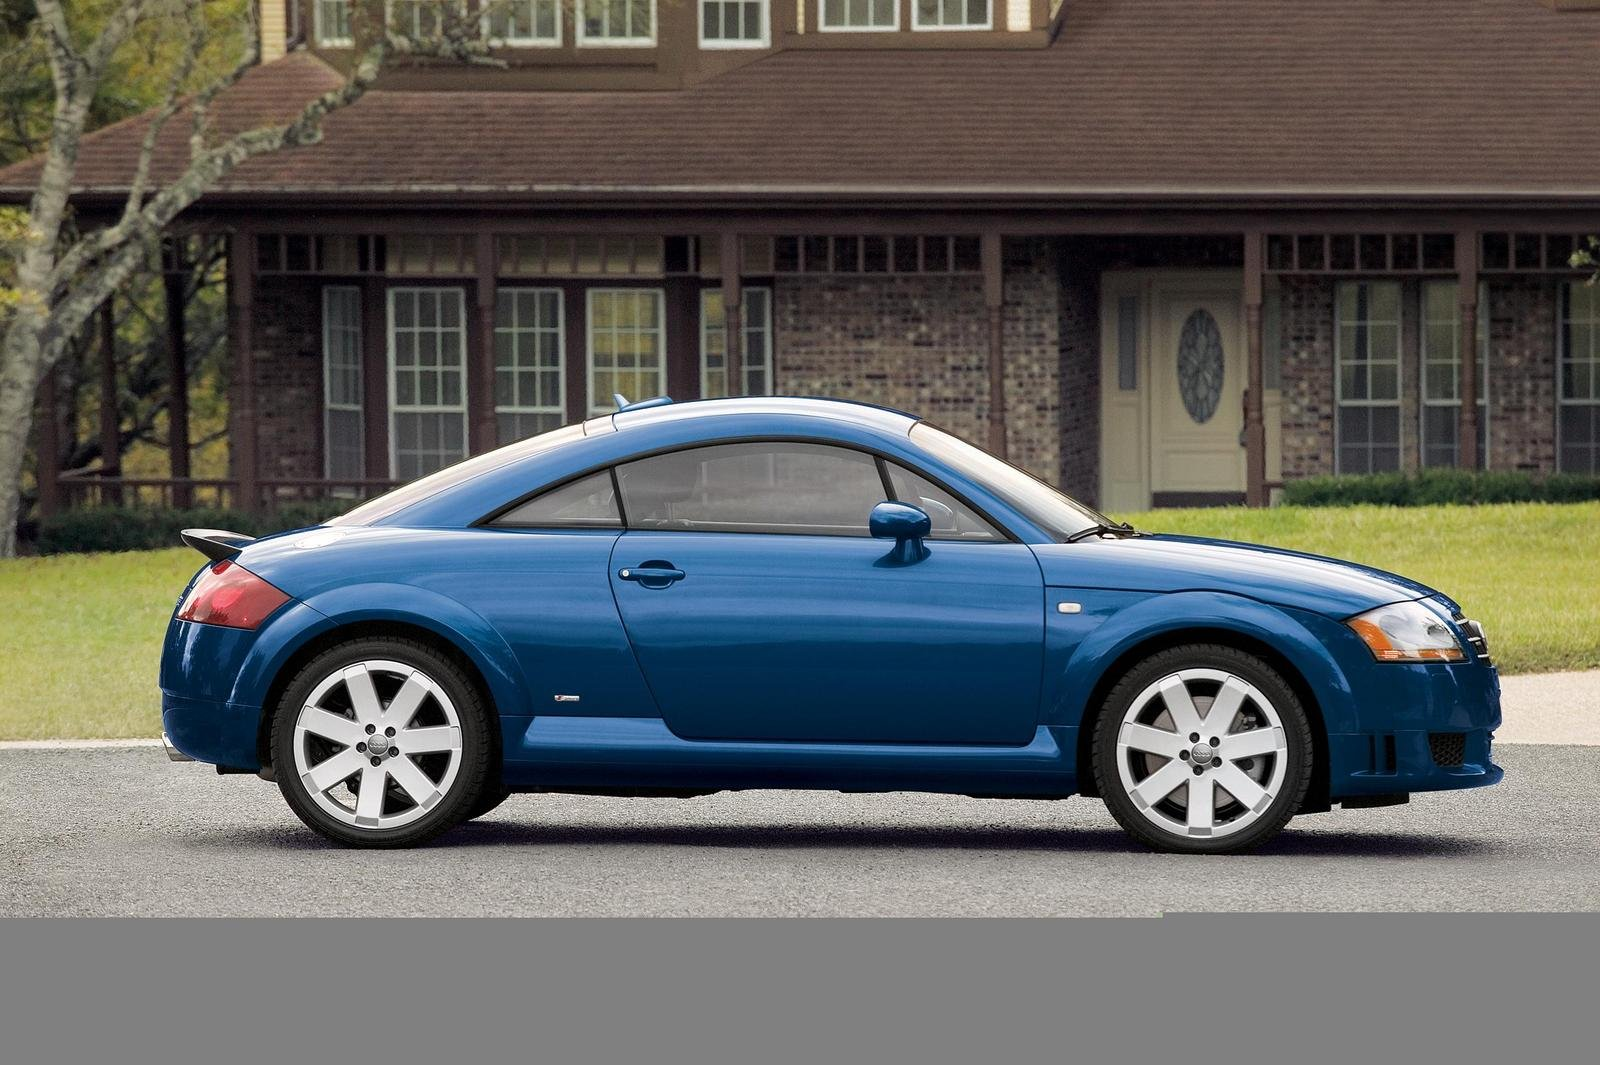 2006 audi tt picture 45078 car review top speed. Black Bedroom Furniture Sets. Home Design Ideas